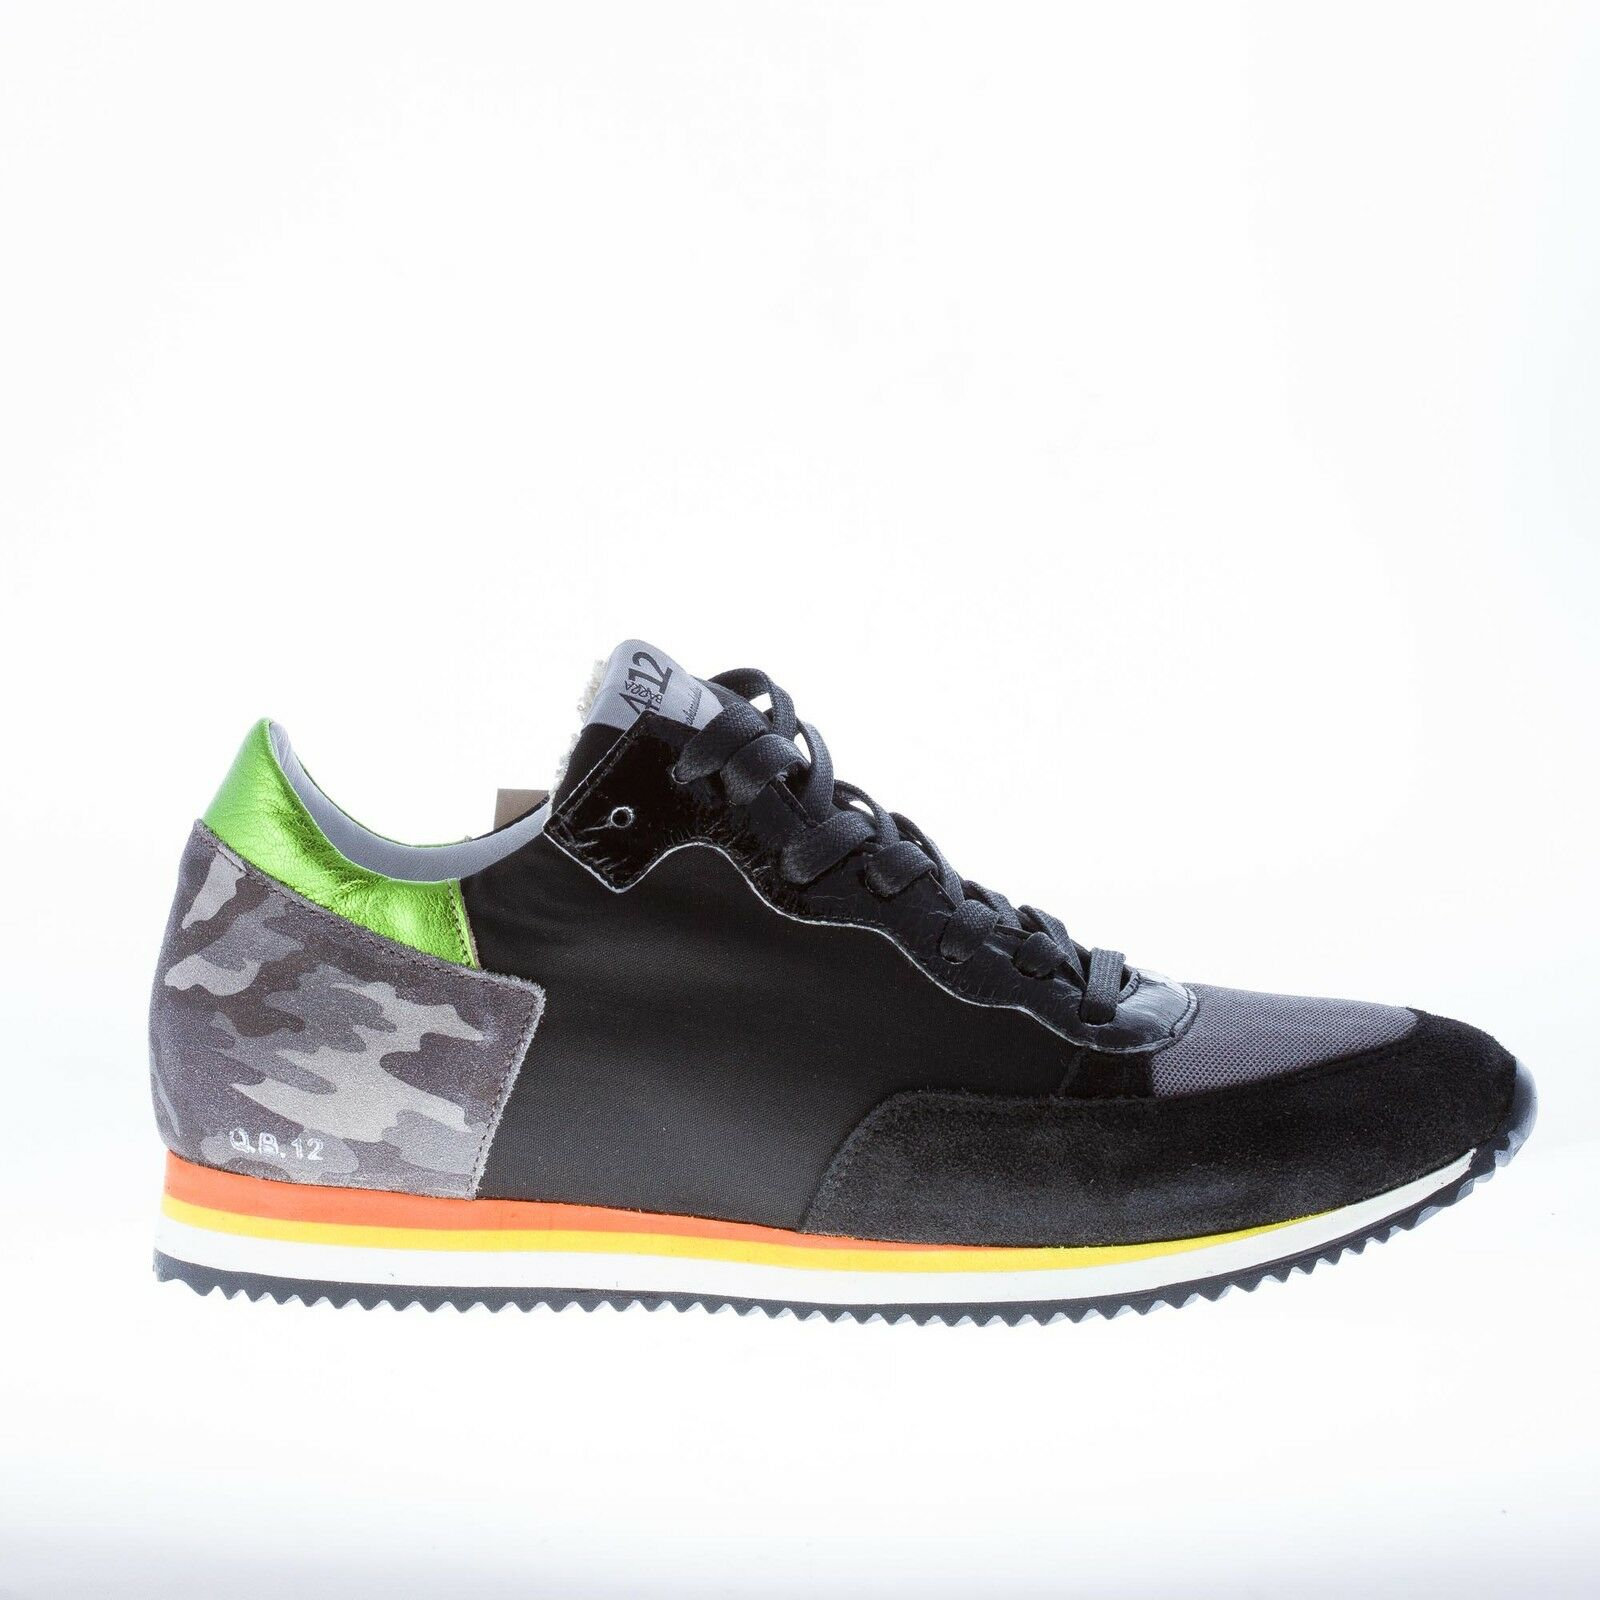 QUATTROBARRADODICI herren schuhe Black suede and fabric sneaker with mimetic